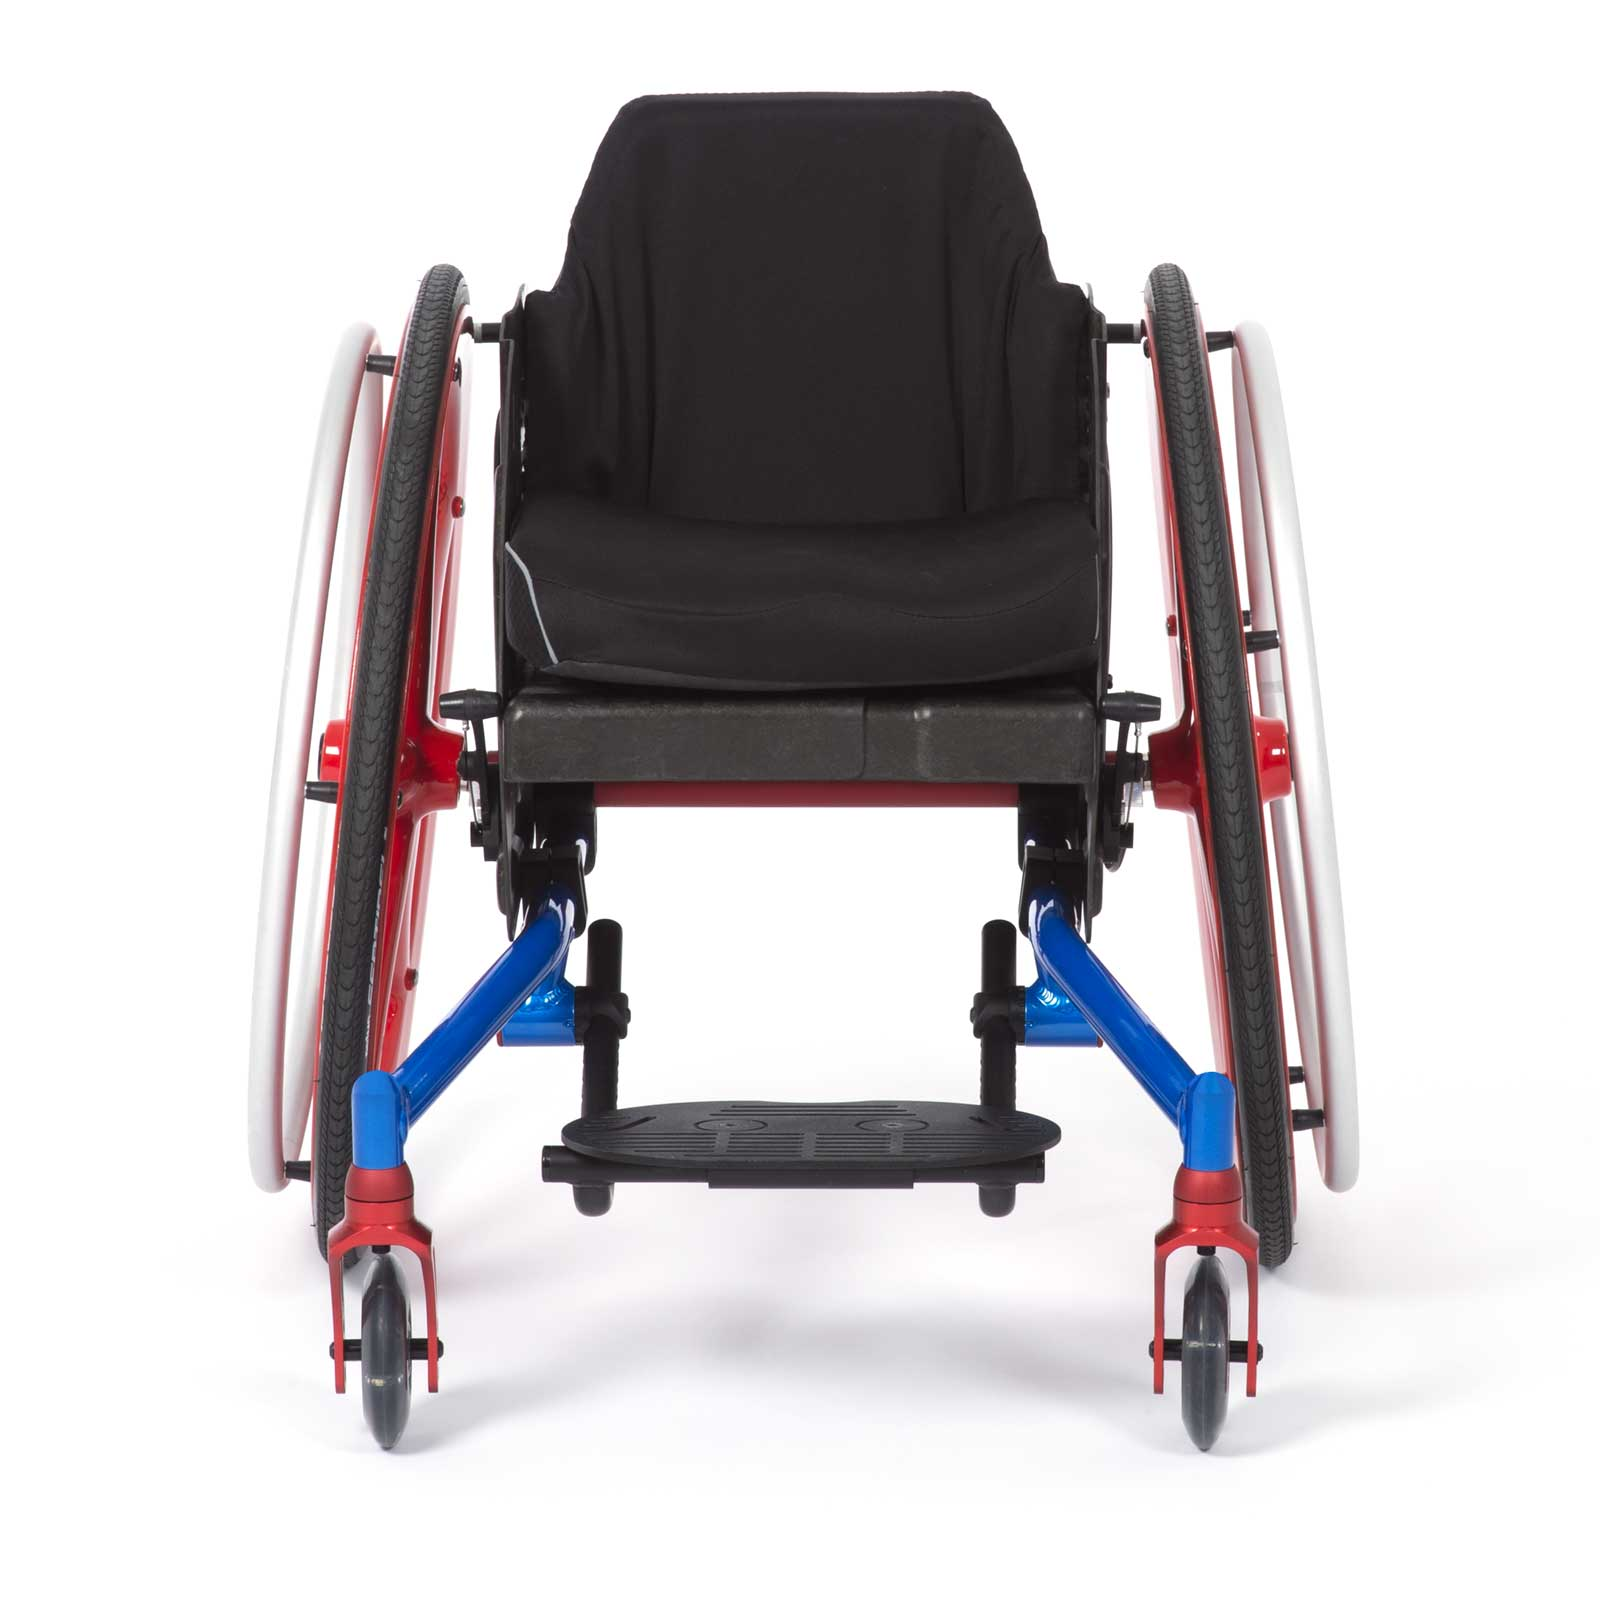 Permobil Front view of TiLite Pilot Wheelchair